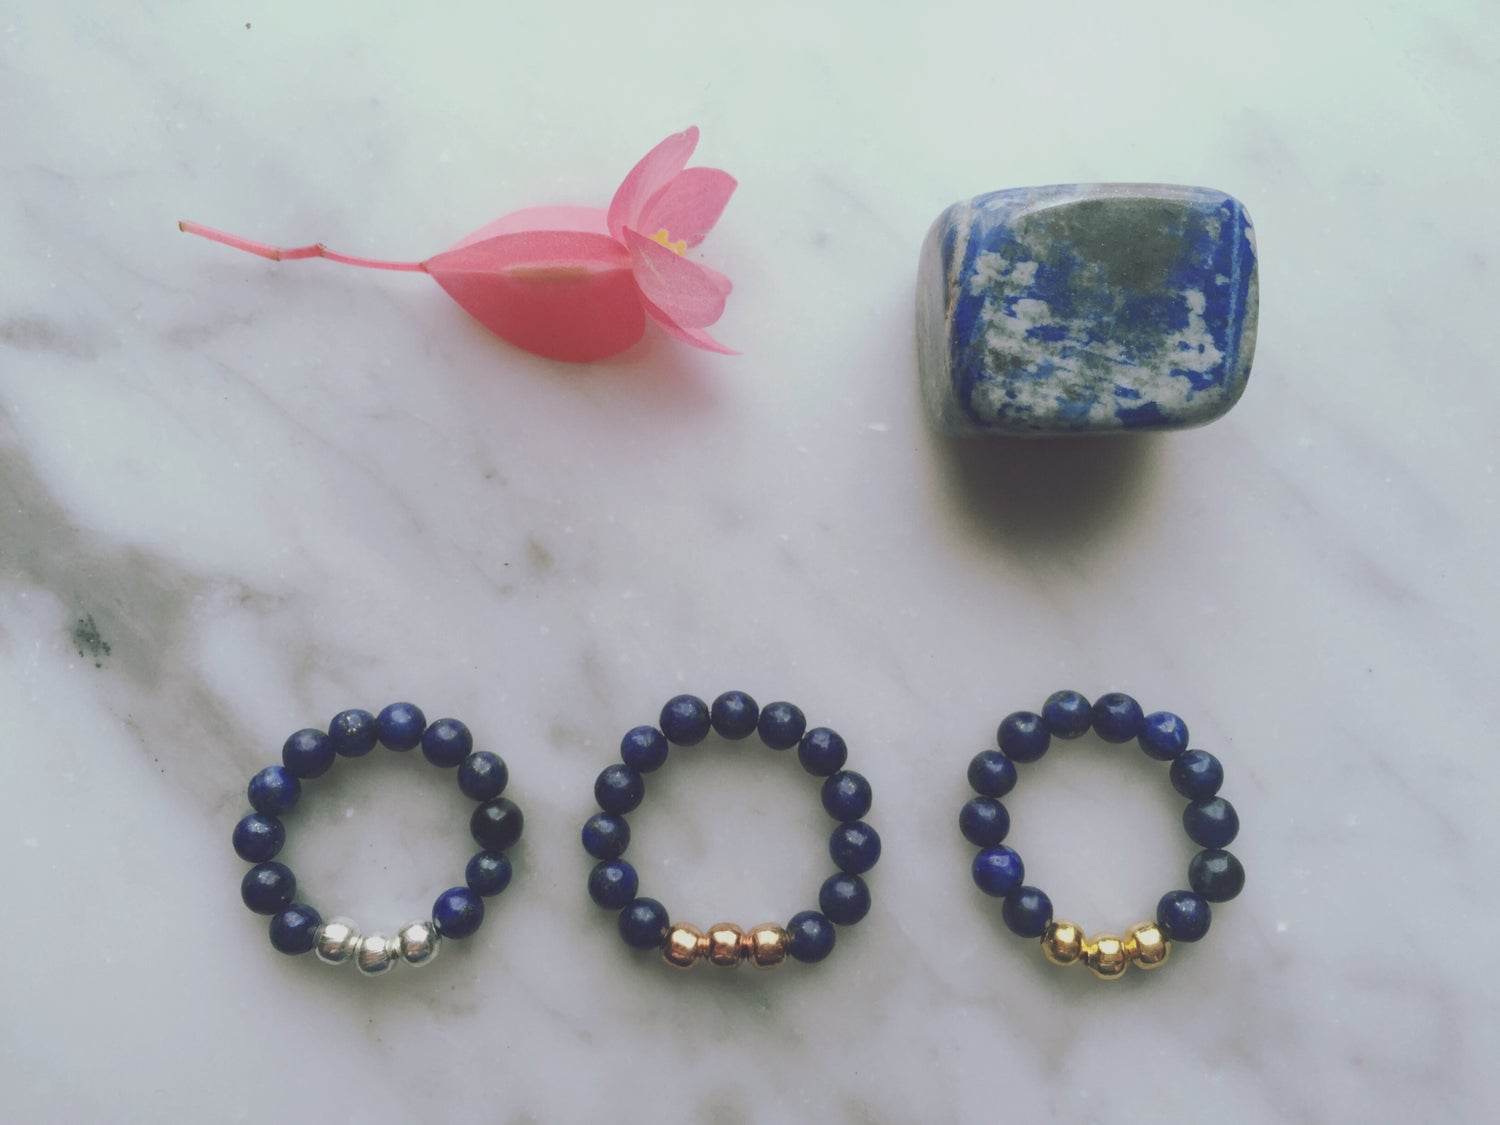 Trio Stretch Ring in Lapis Lazuli